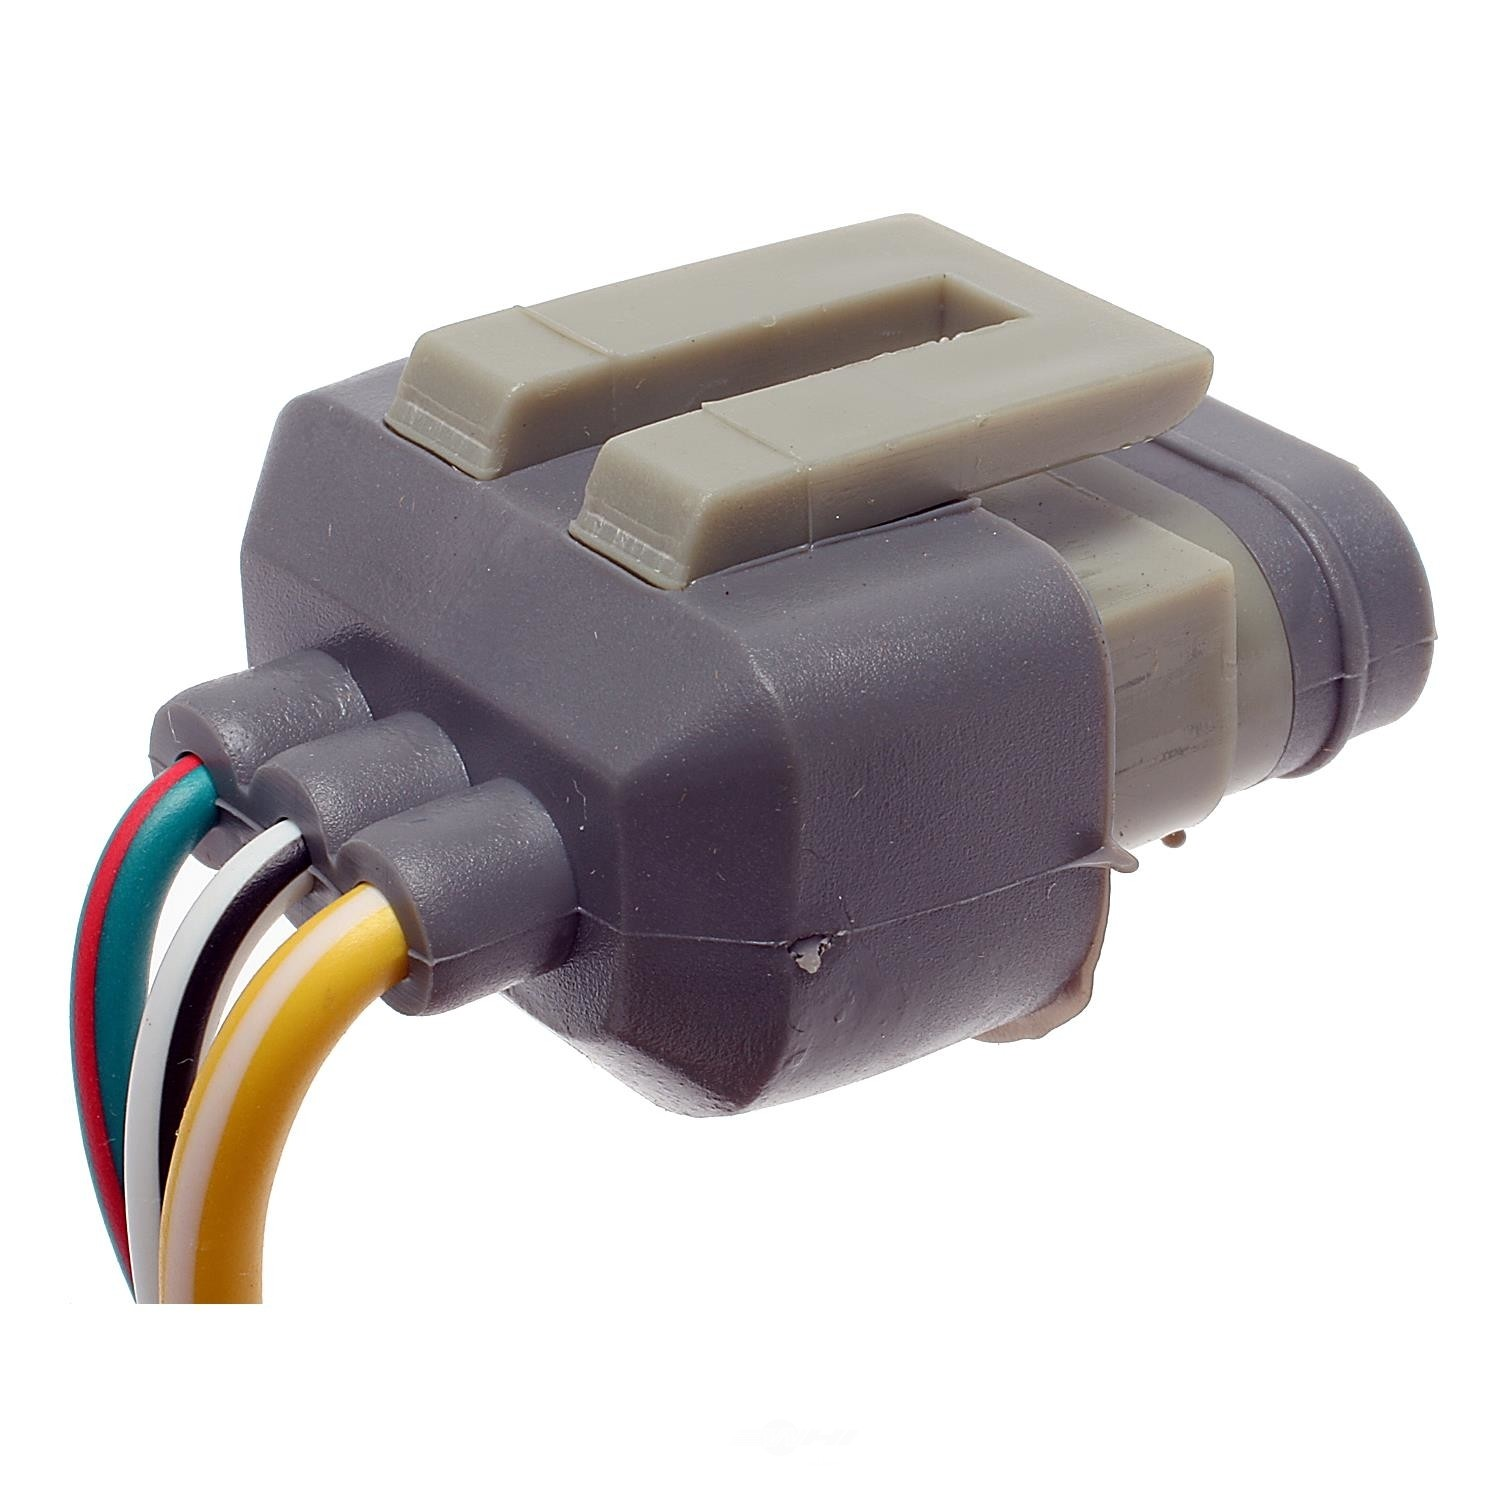 HANDY PACK - Voltage Regulator Connector - HDY HP3910